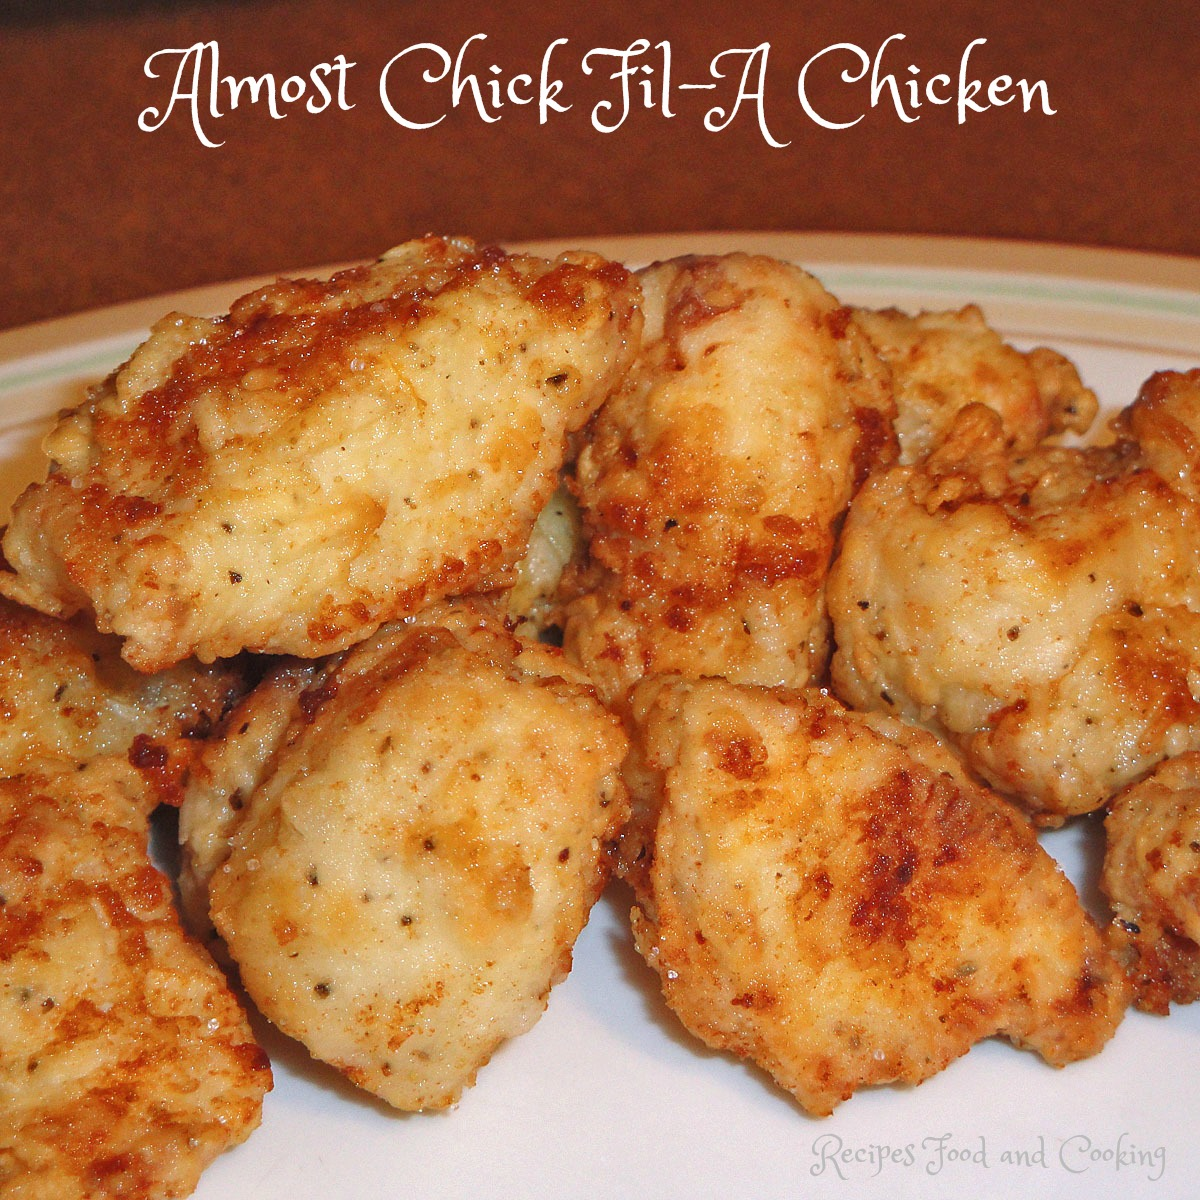 Almost Chick Fil-A Chicken